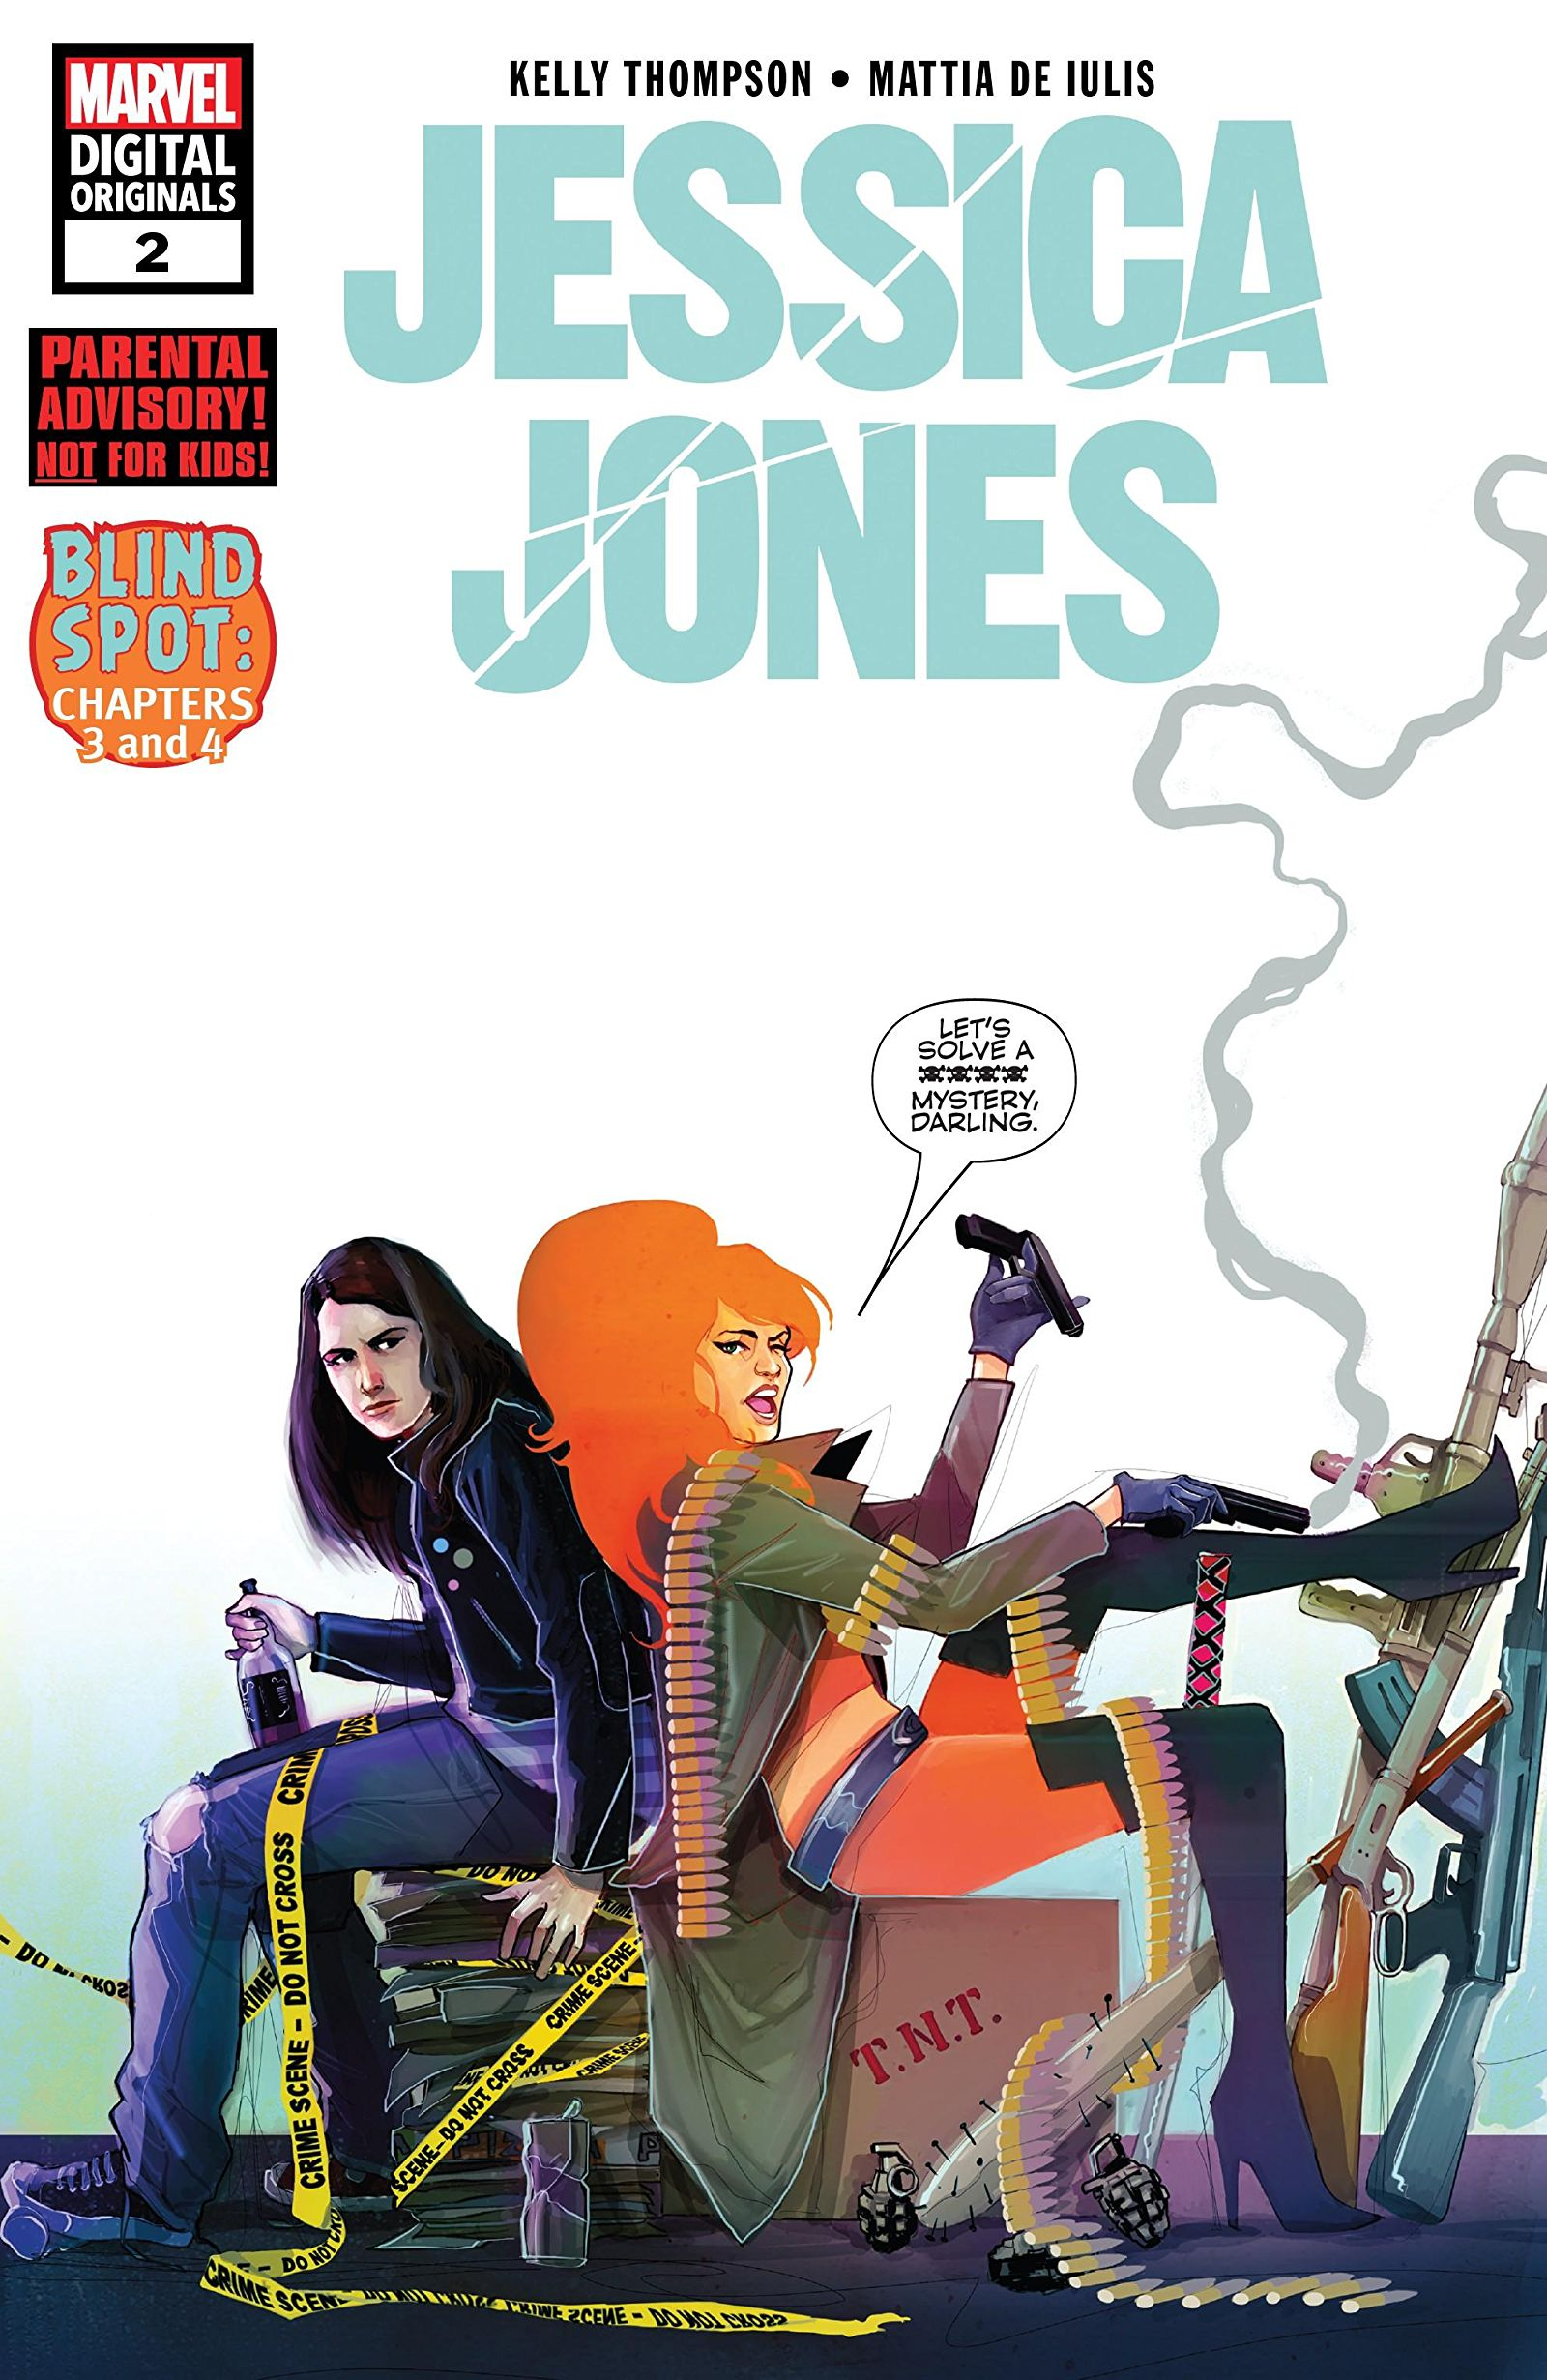 Jessica Jones - Marvel Digital Original Vol 1 2